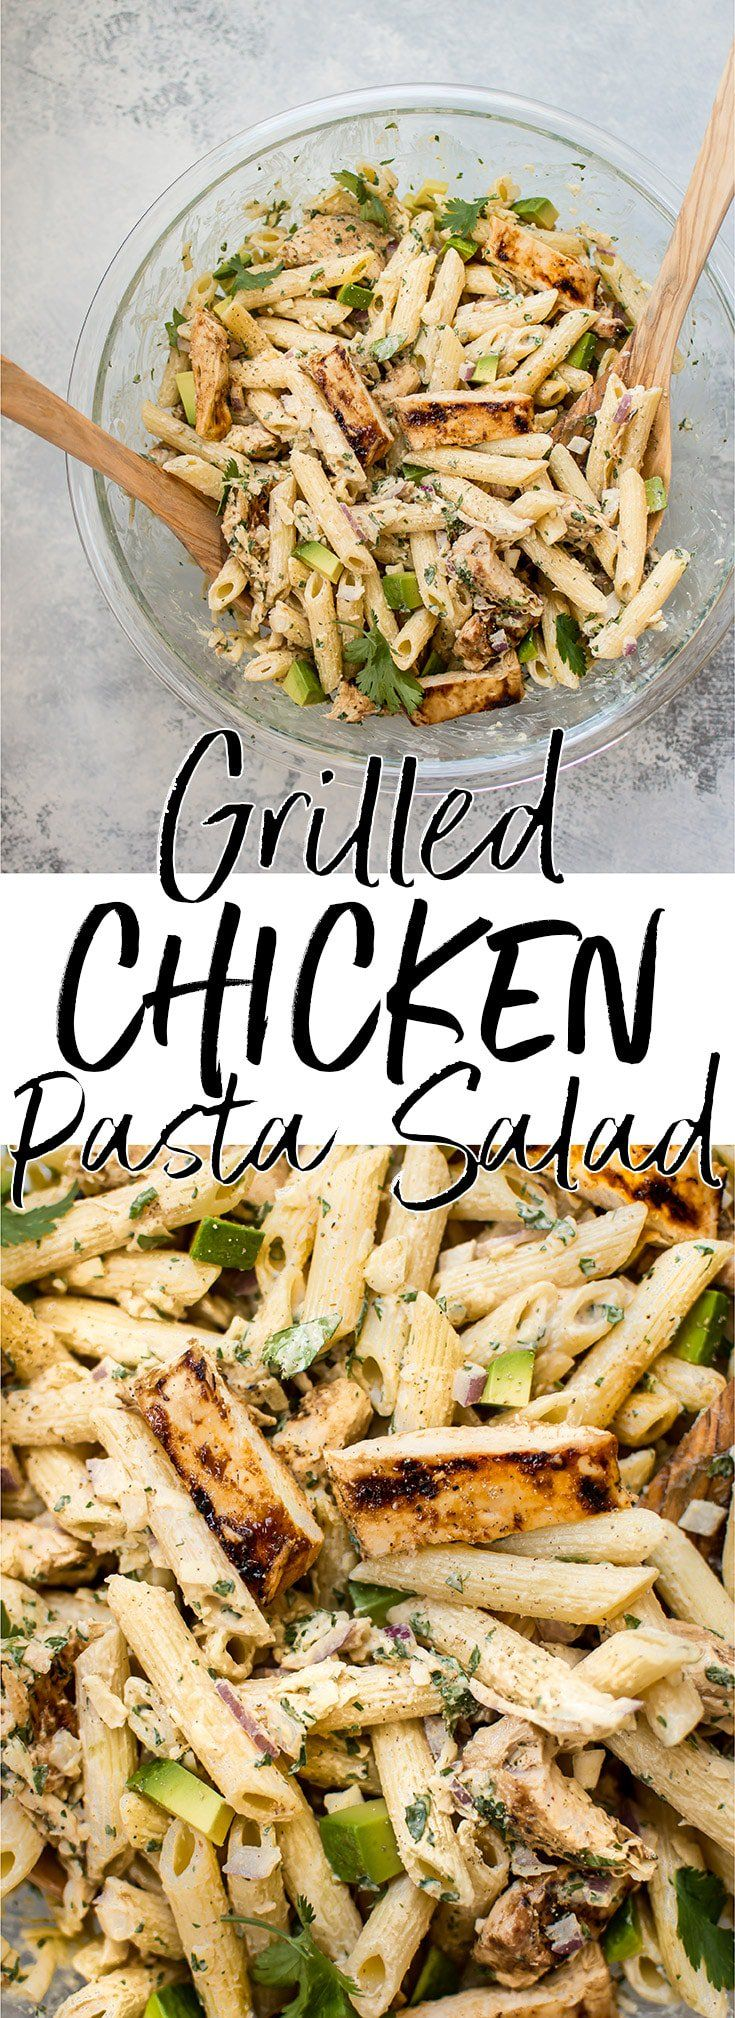 Photo of Grilled Chicken Pasta Salad